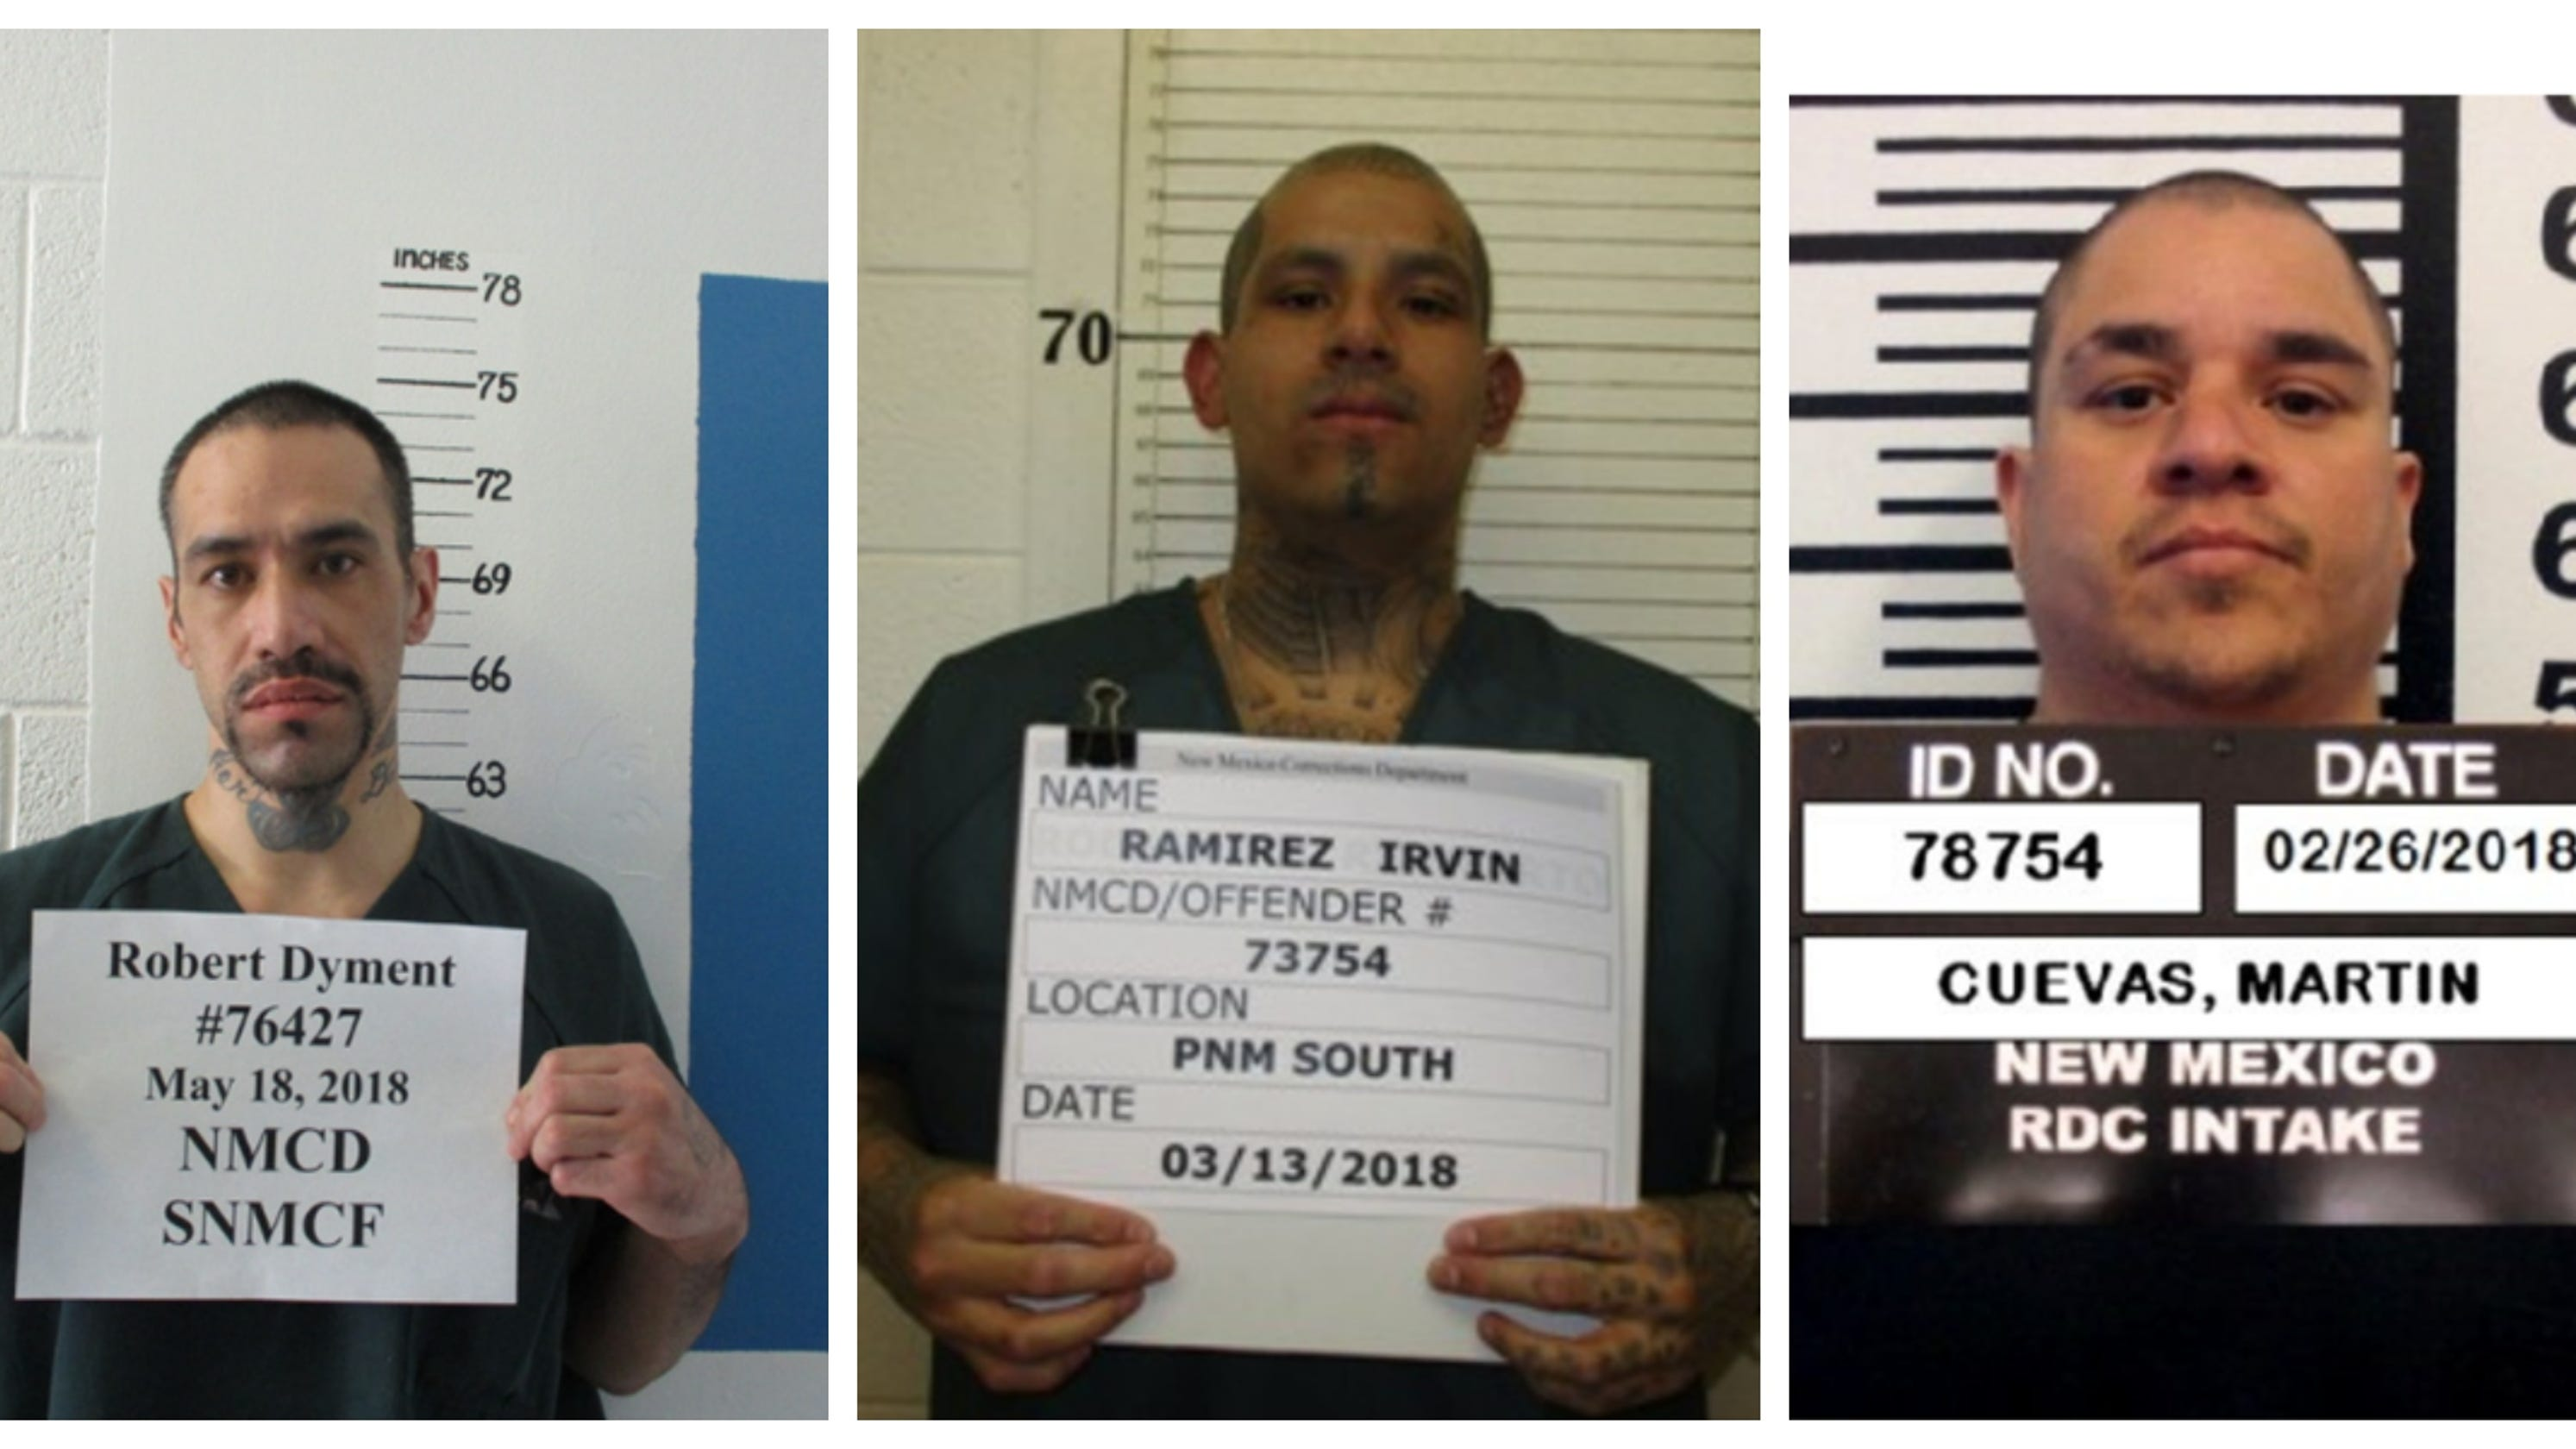 New Mexico inmates charged with attempted murder after